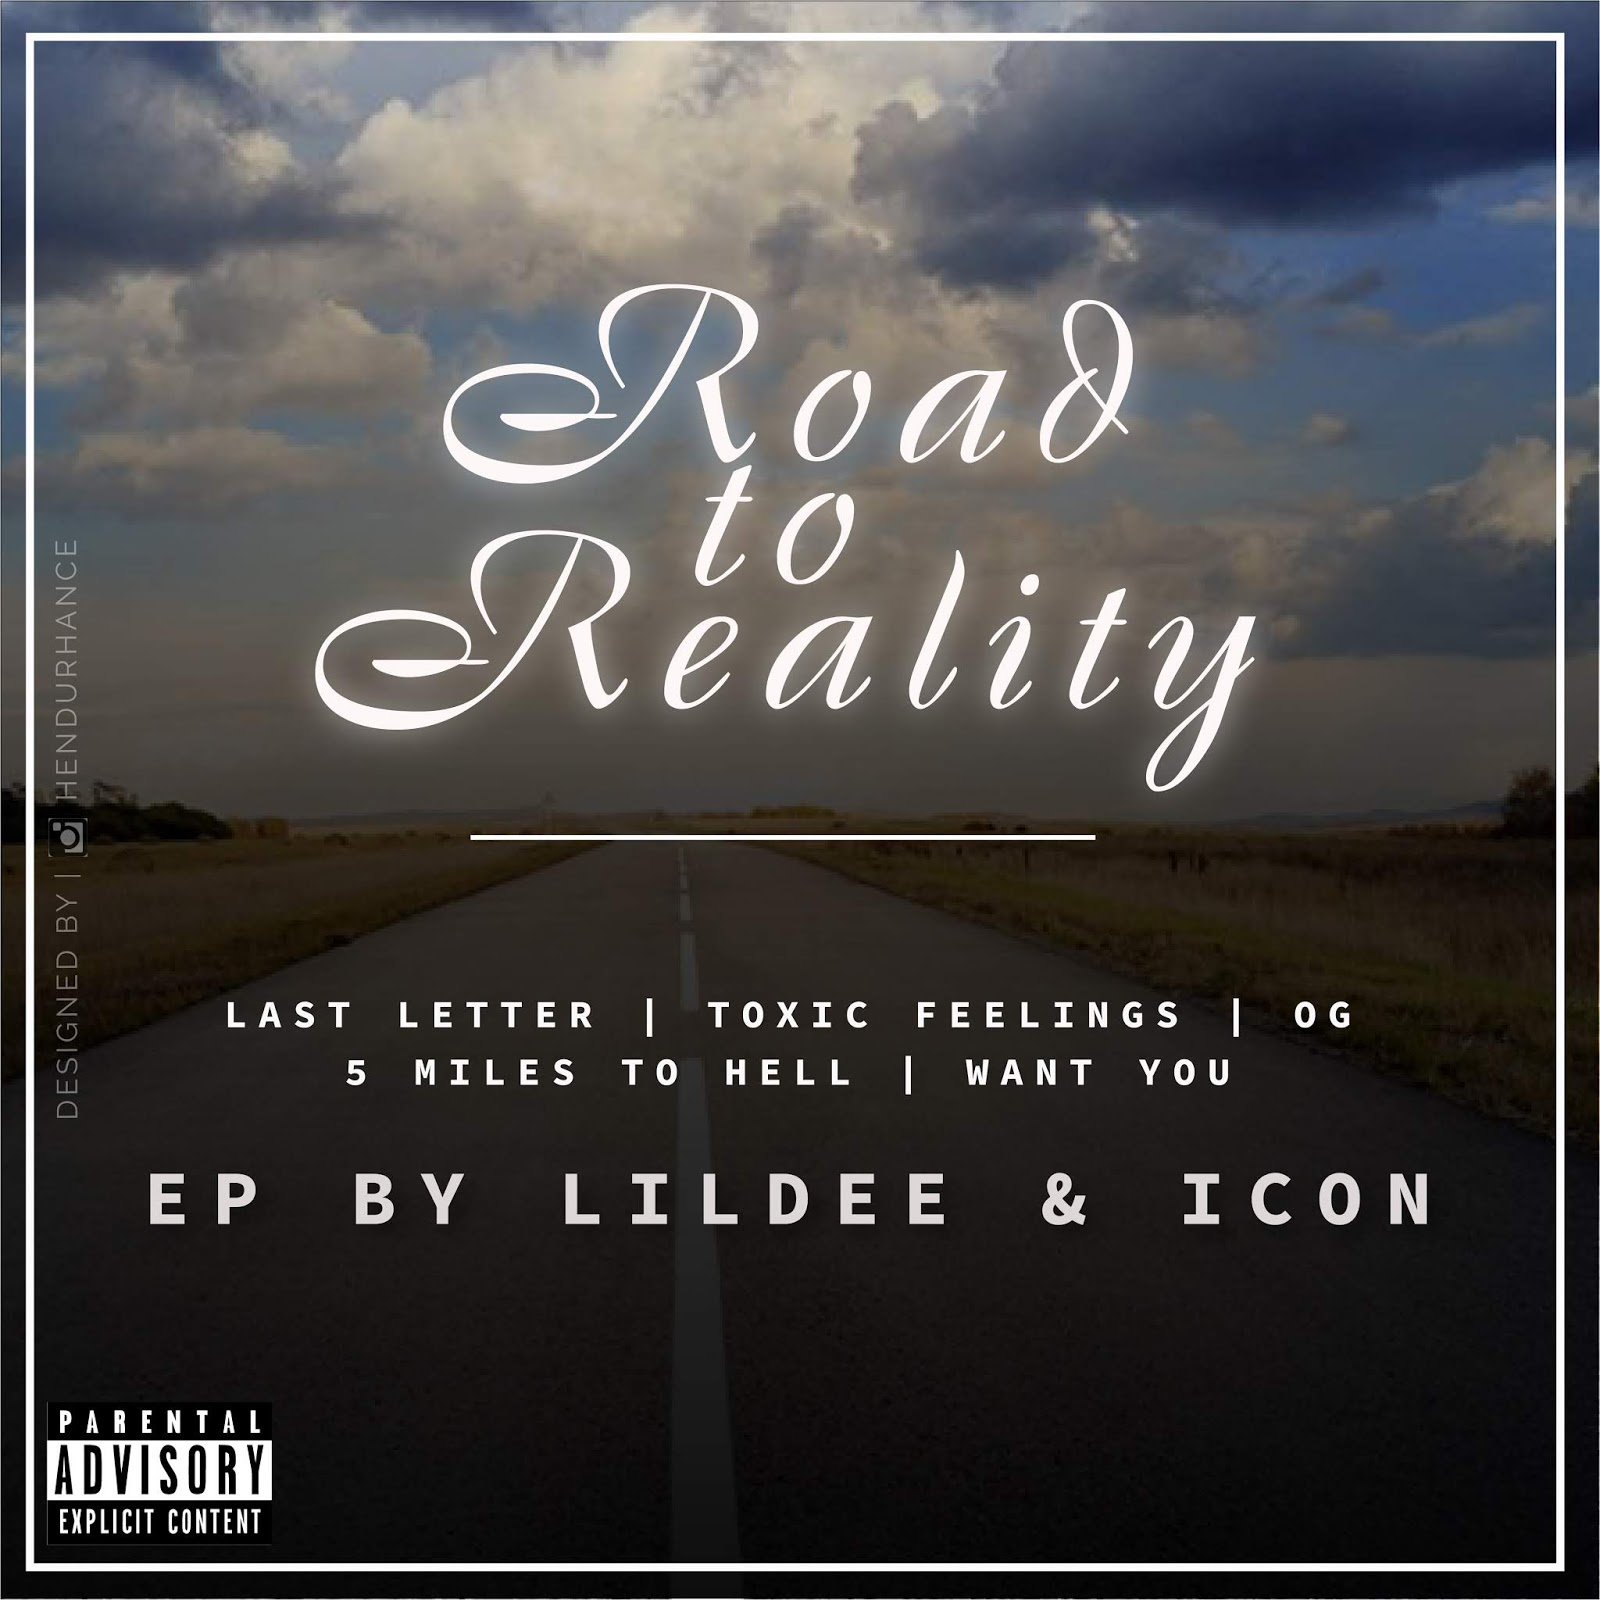 [EP] Lildee & Icon - Road To Reality